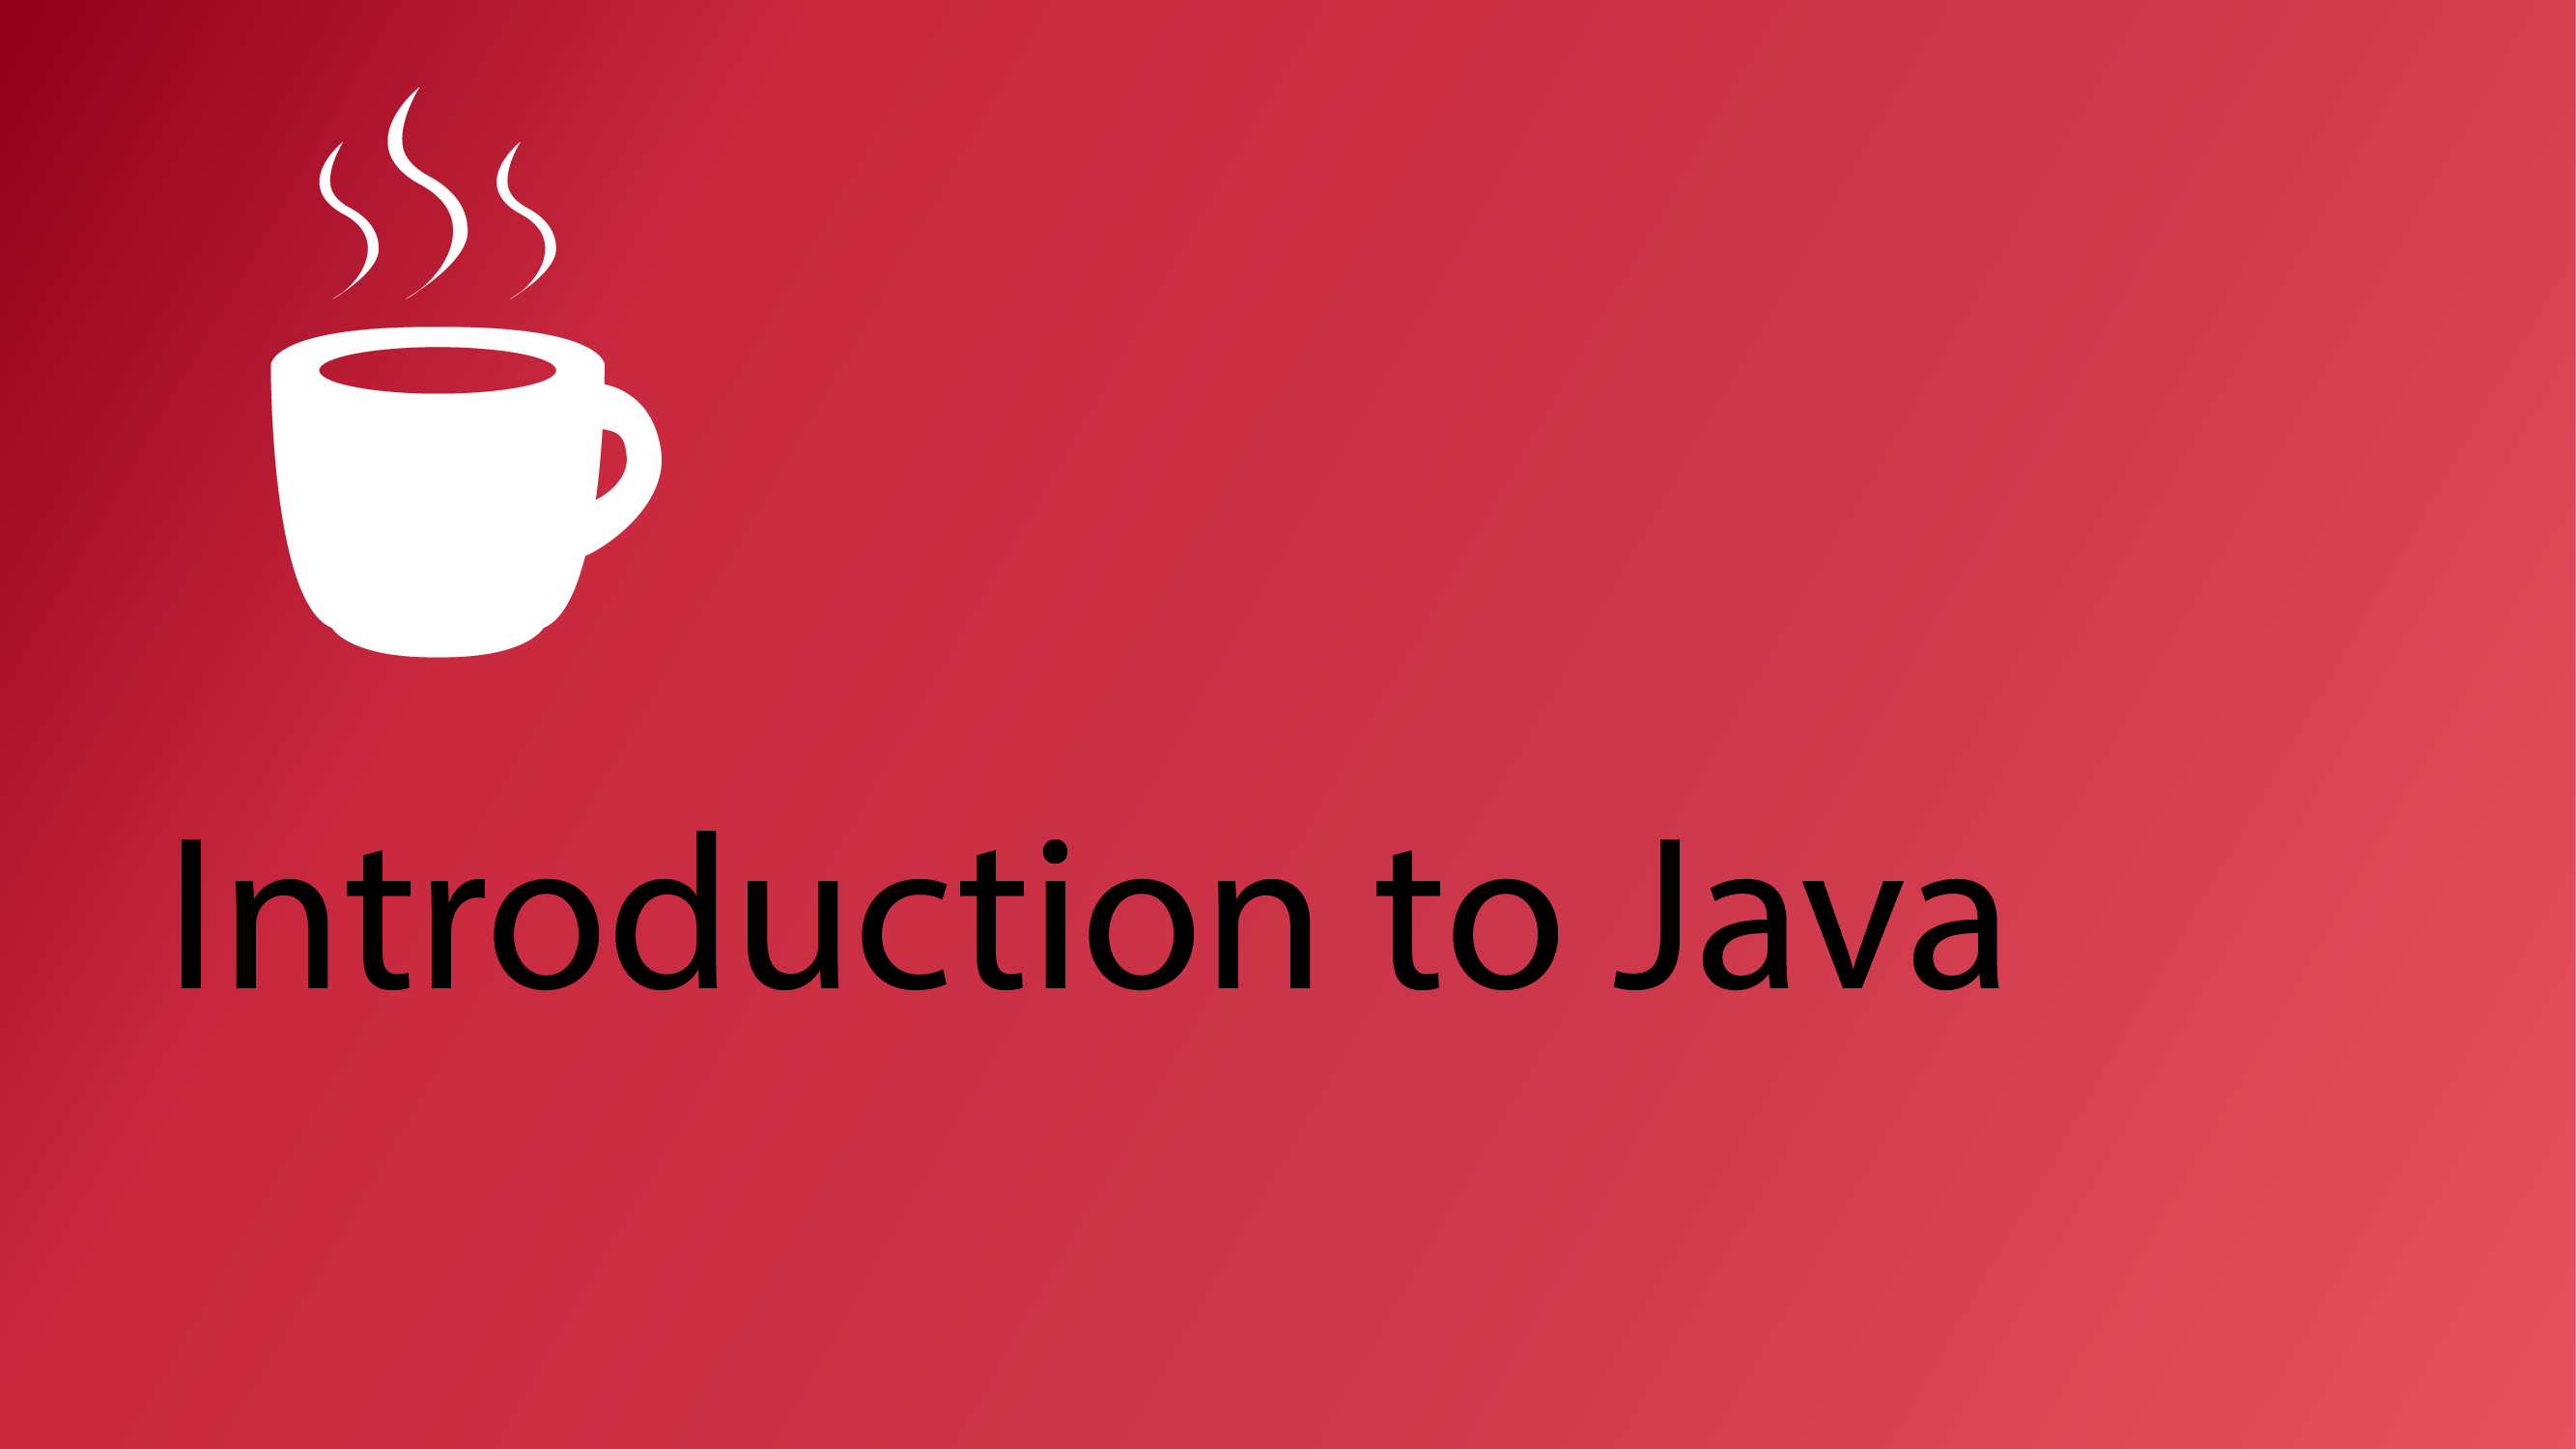 Java tutorials codemahal welcome to the java programming tutorial series this series will teach you the fundamentals of coding in the java language and object oriented programming baditri Image collections